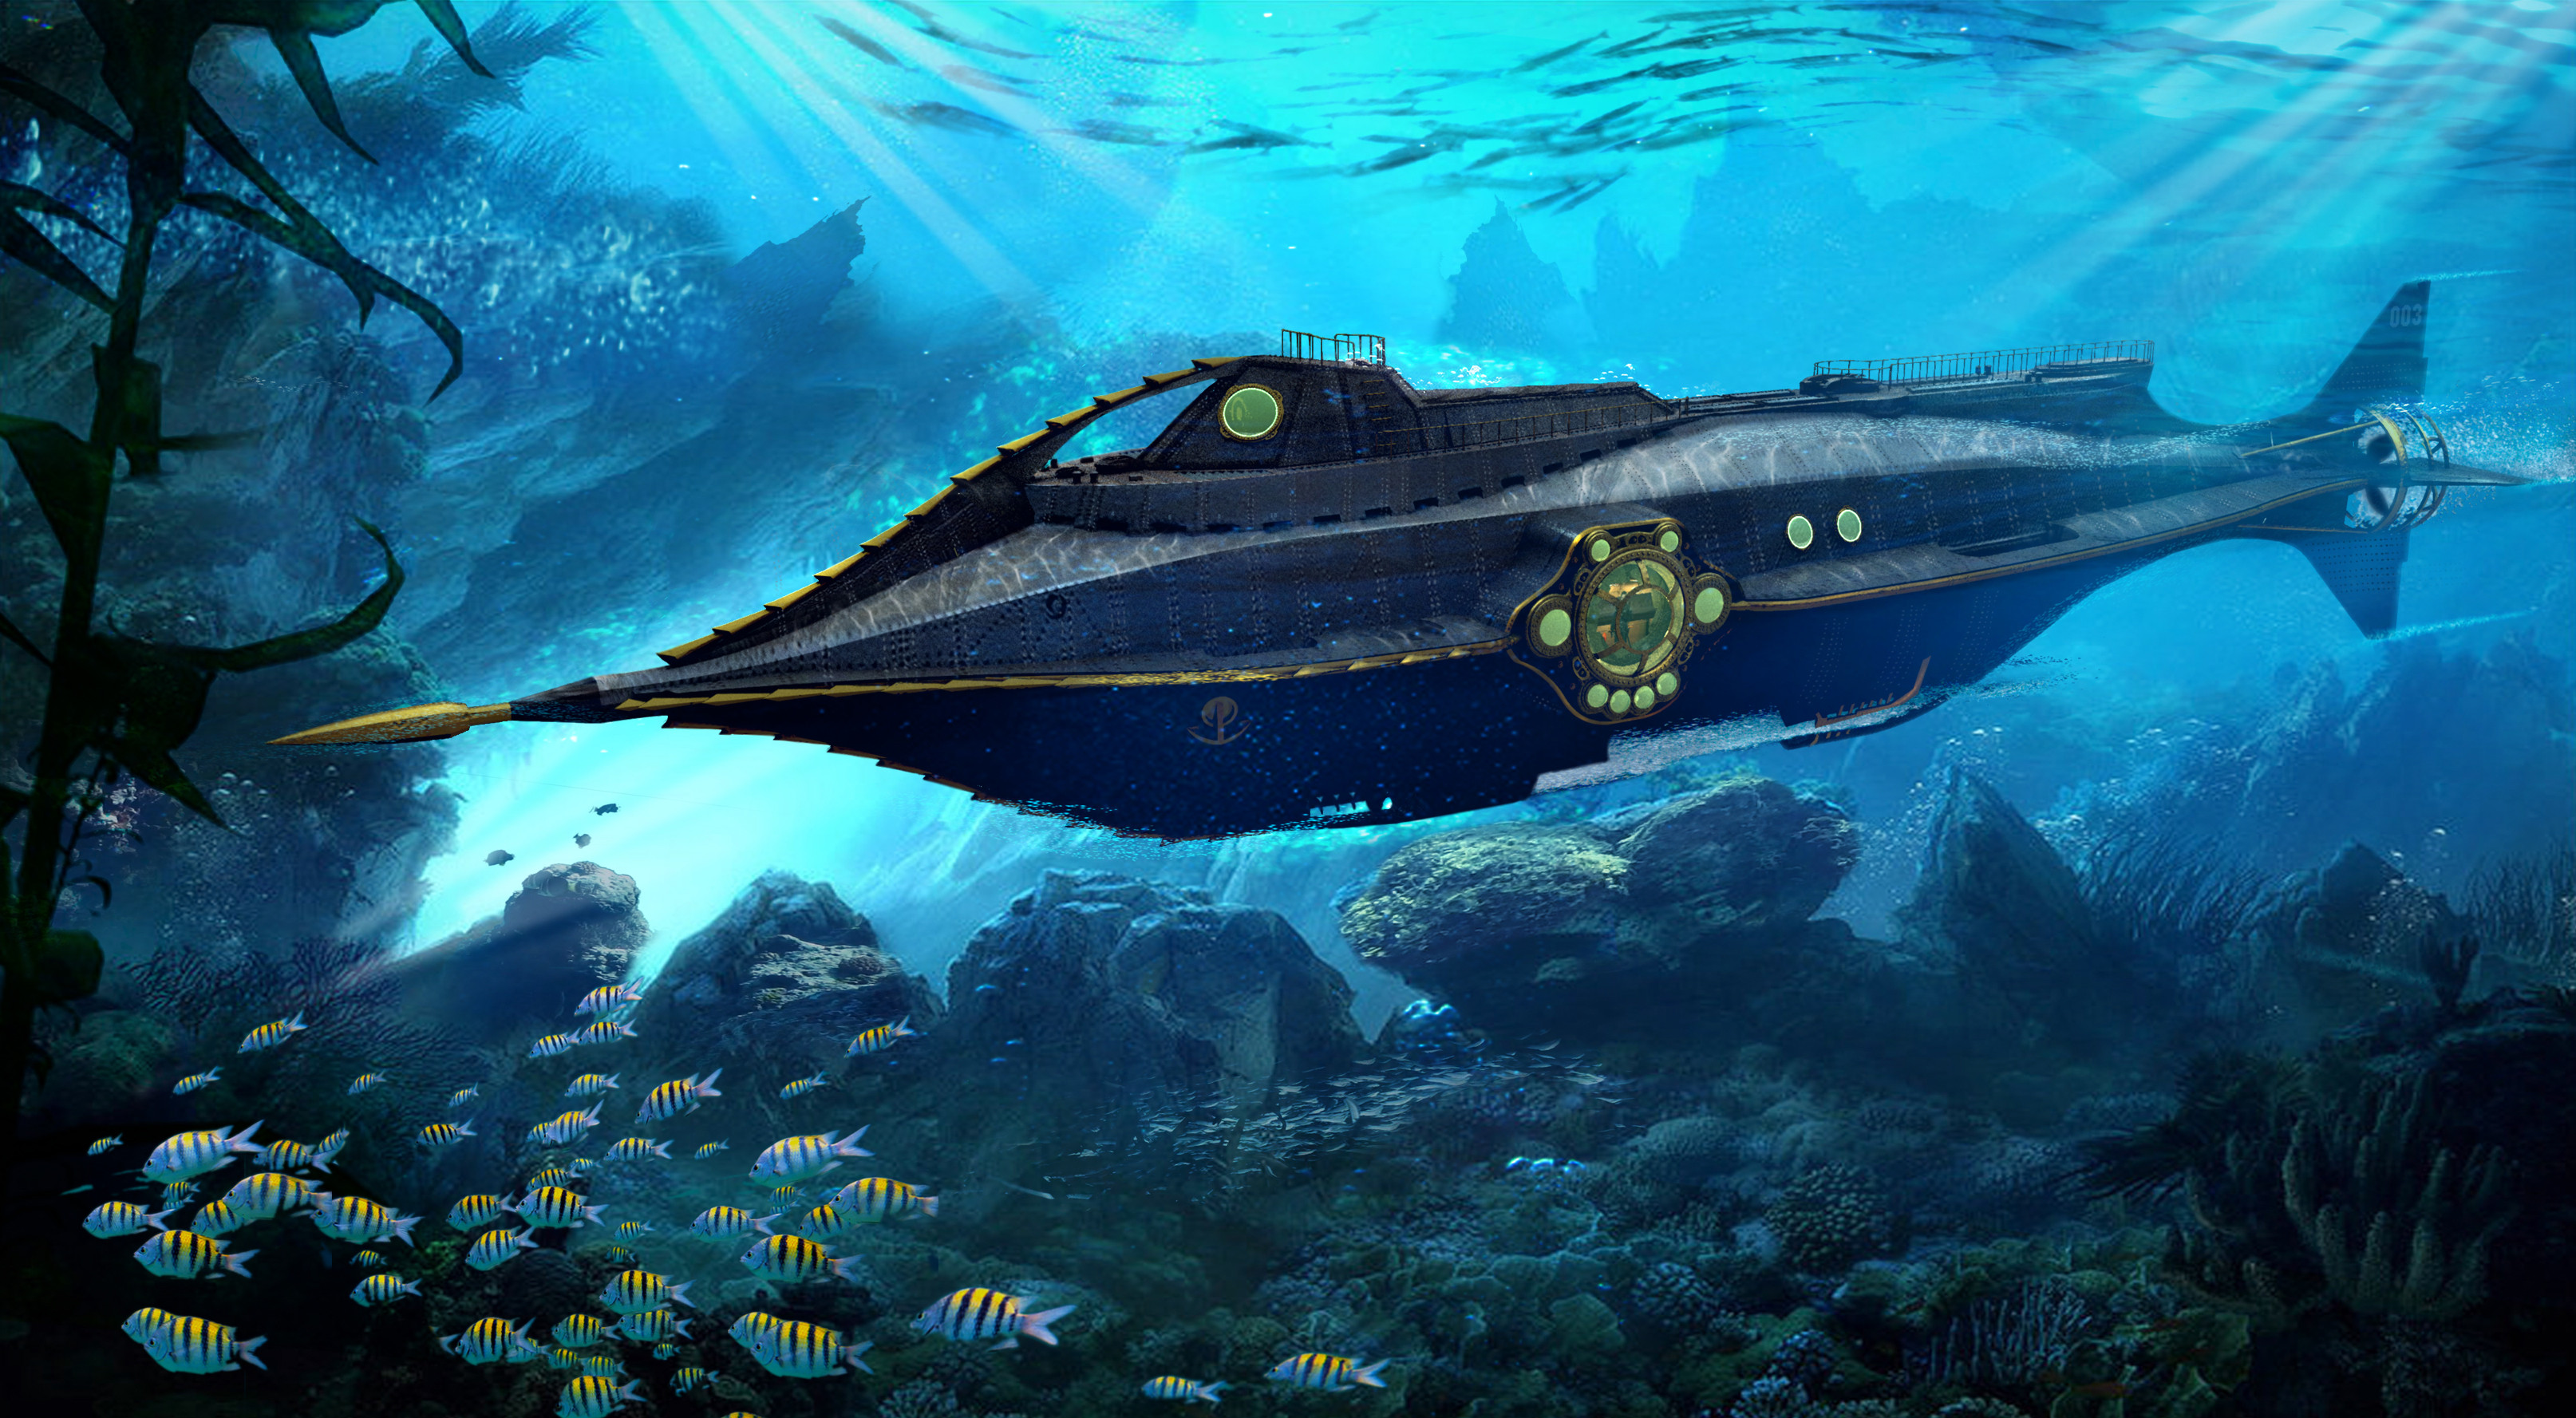 2D / 3D Nautilus Submarine Concept for ABC's Once Upon a Time Season 7